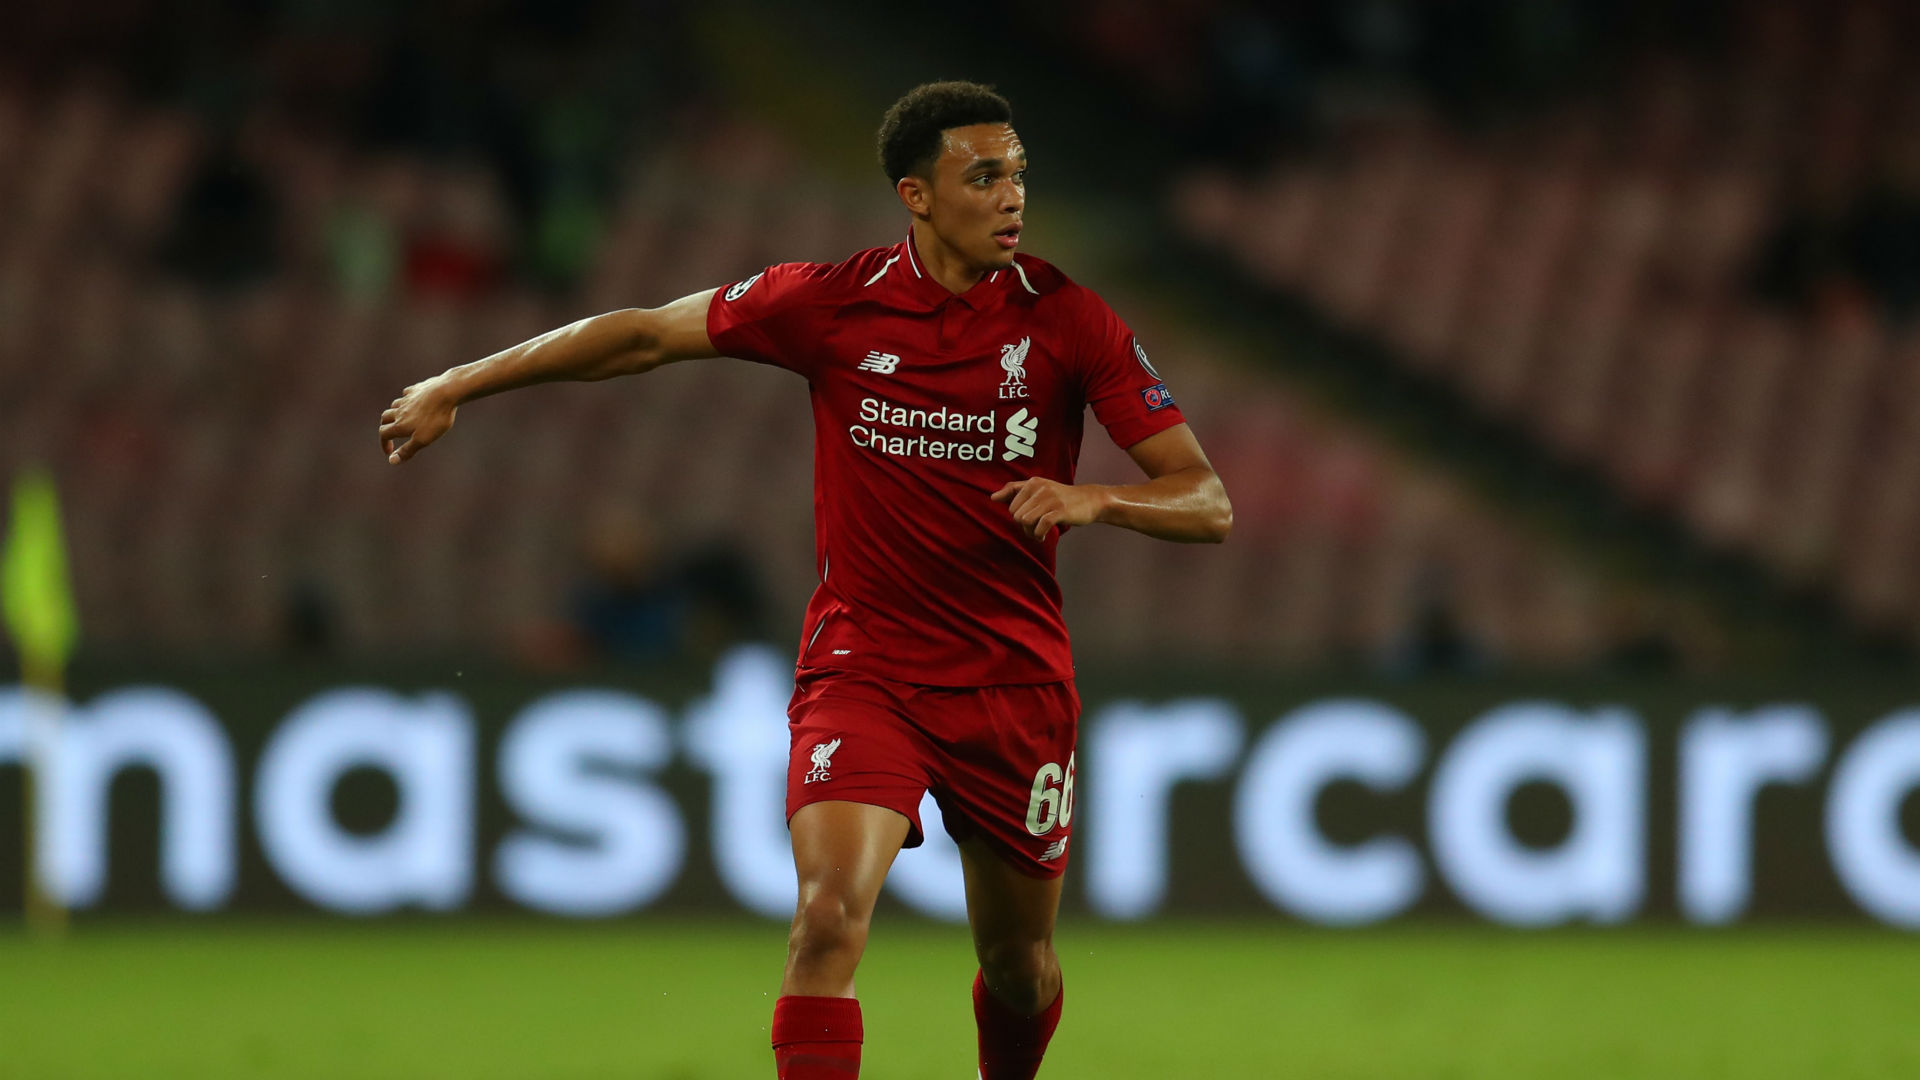 Alexander-Arnold targets glory at home and abroad